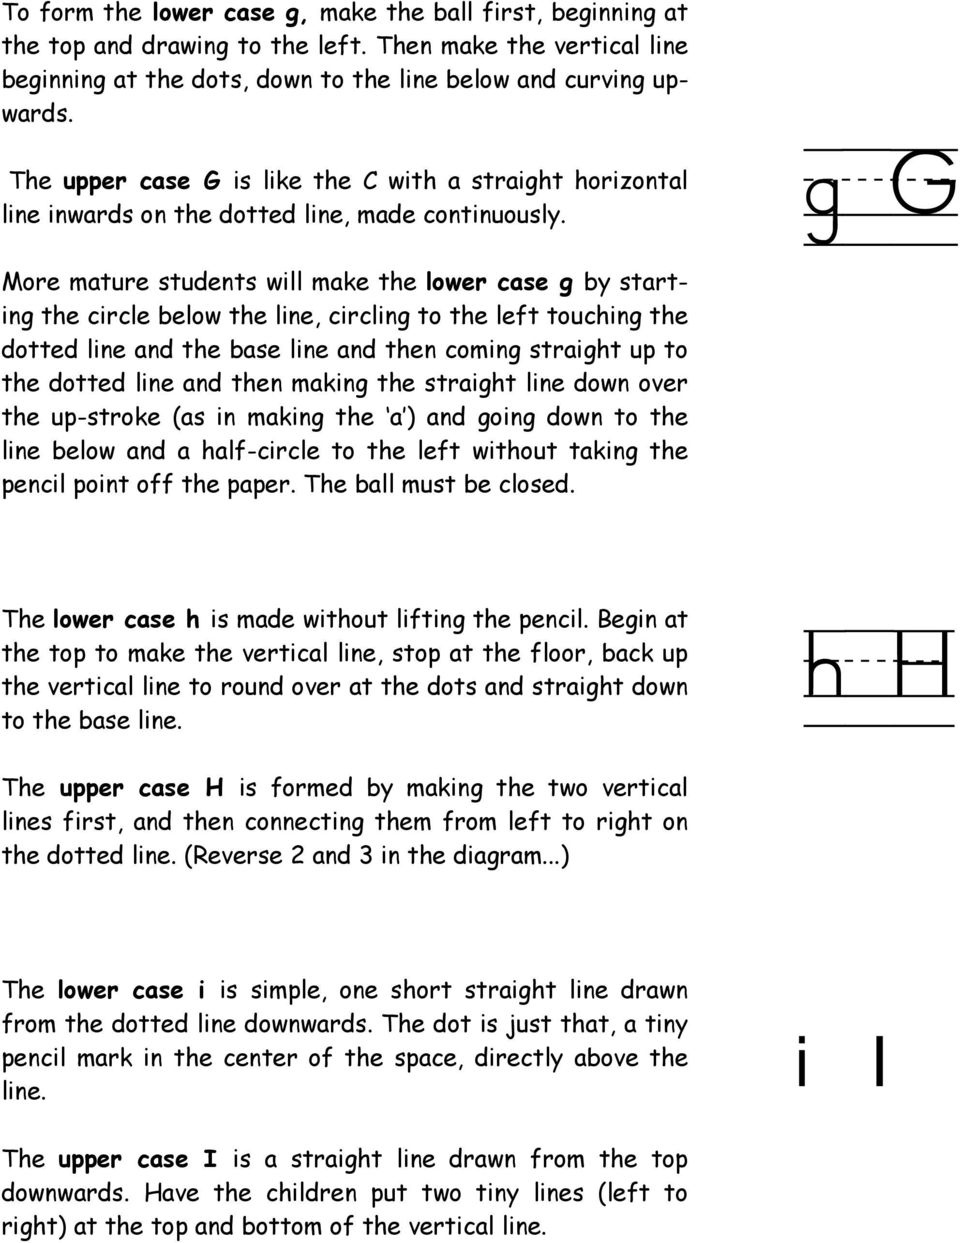 g/g More mature students will make the lower case g by starting the circle below the line, circling to the left touching the dotted line and the base line and then coming straight up to the dotted